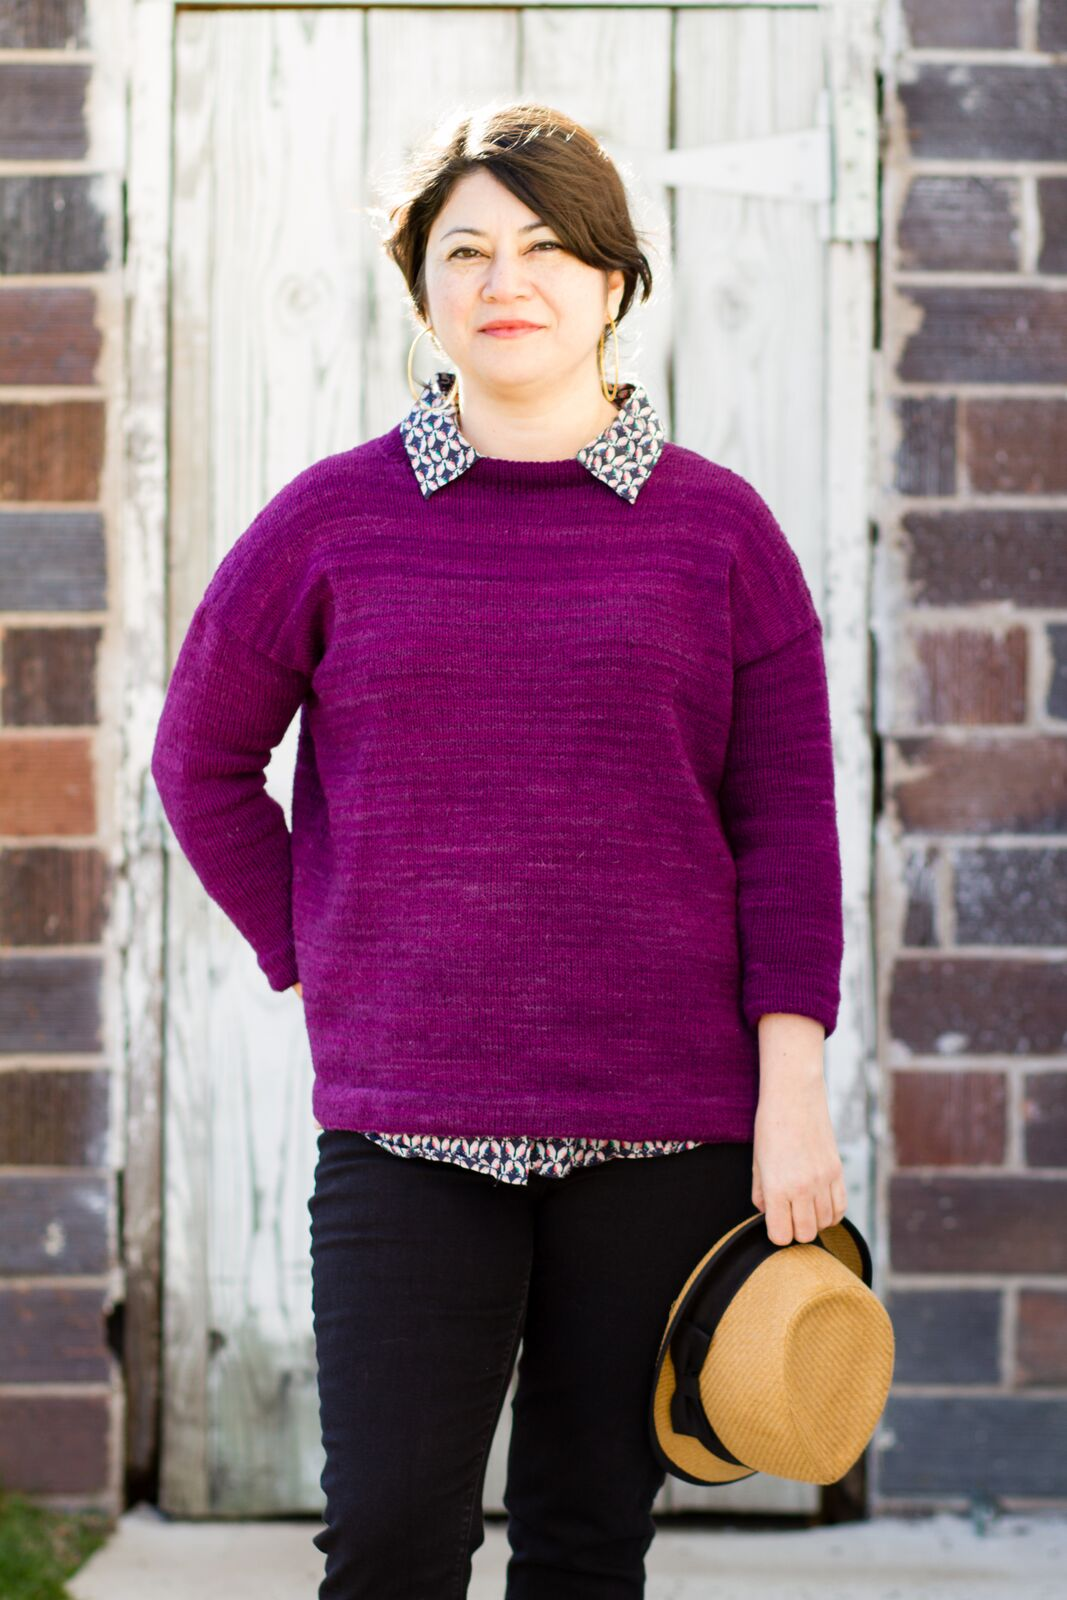 Olga's femme adaptation of the Abram sweater, in Catskill Merino sport.If you're planning to make this oversized femme version of the sweater, I'll include instructions for adapting the pattern at each stage of the knitalong.